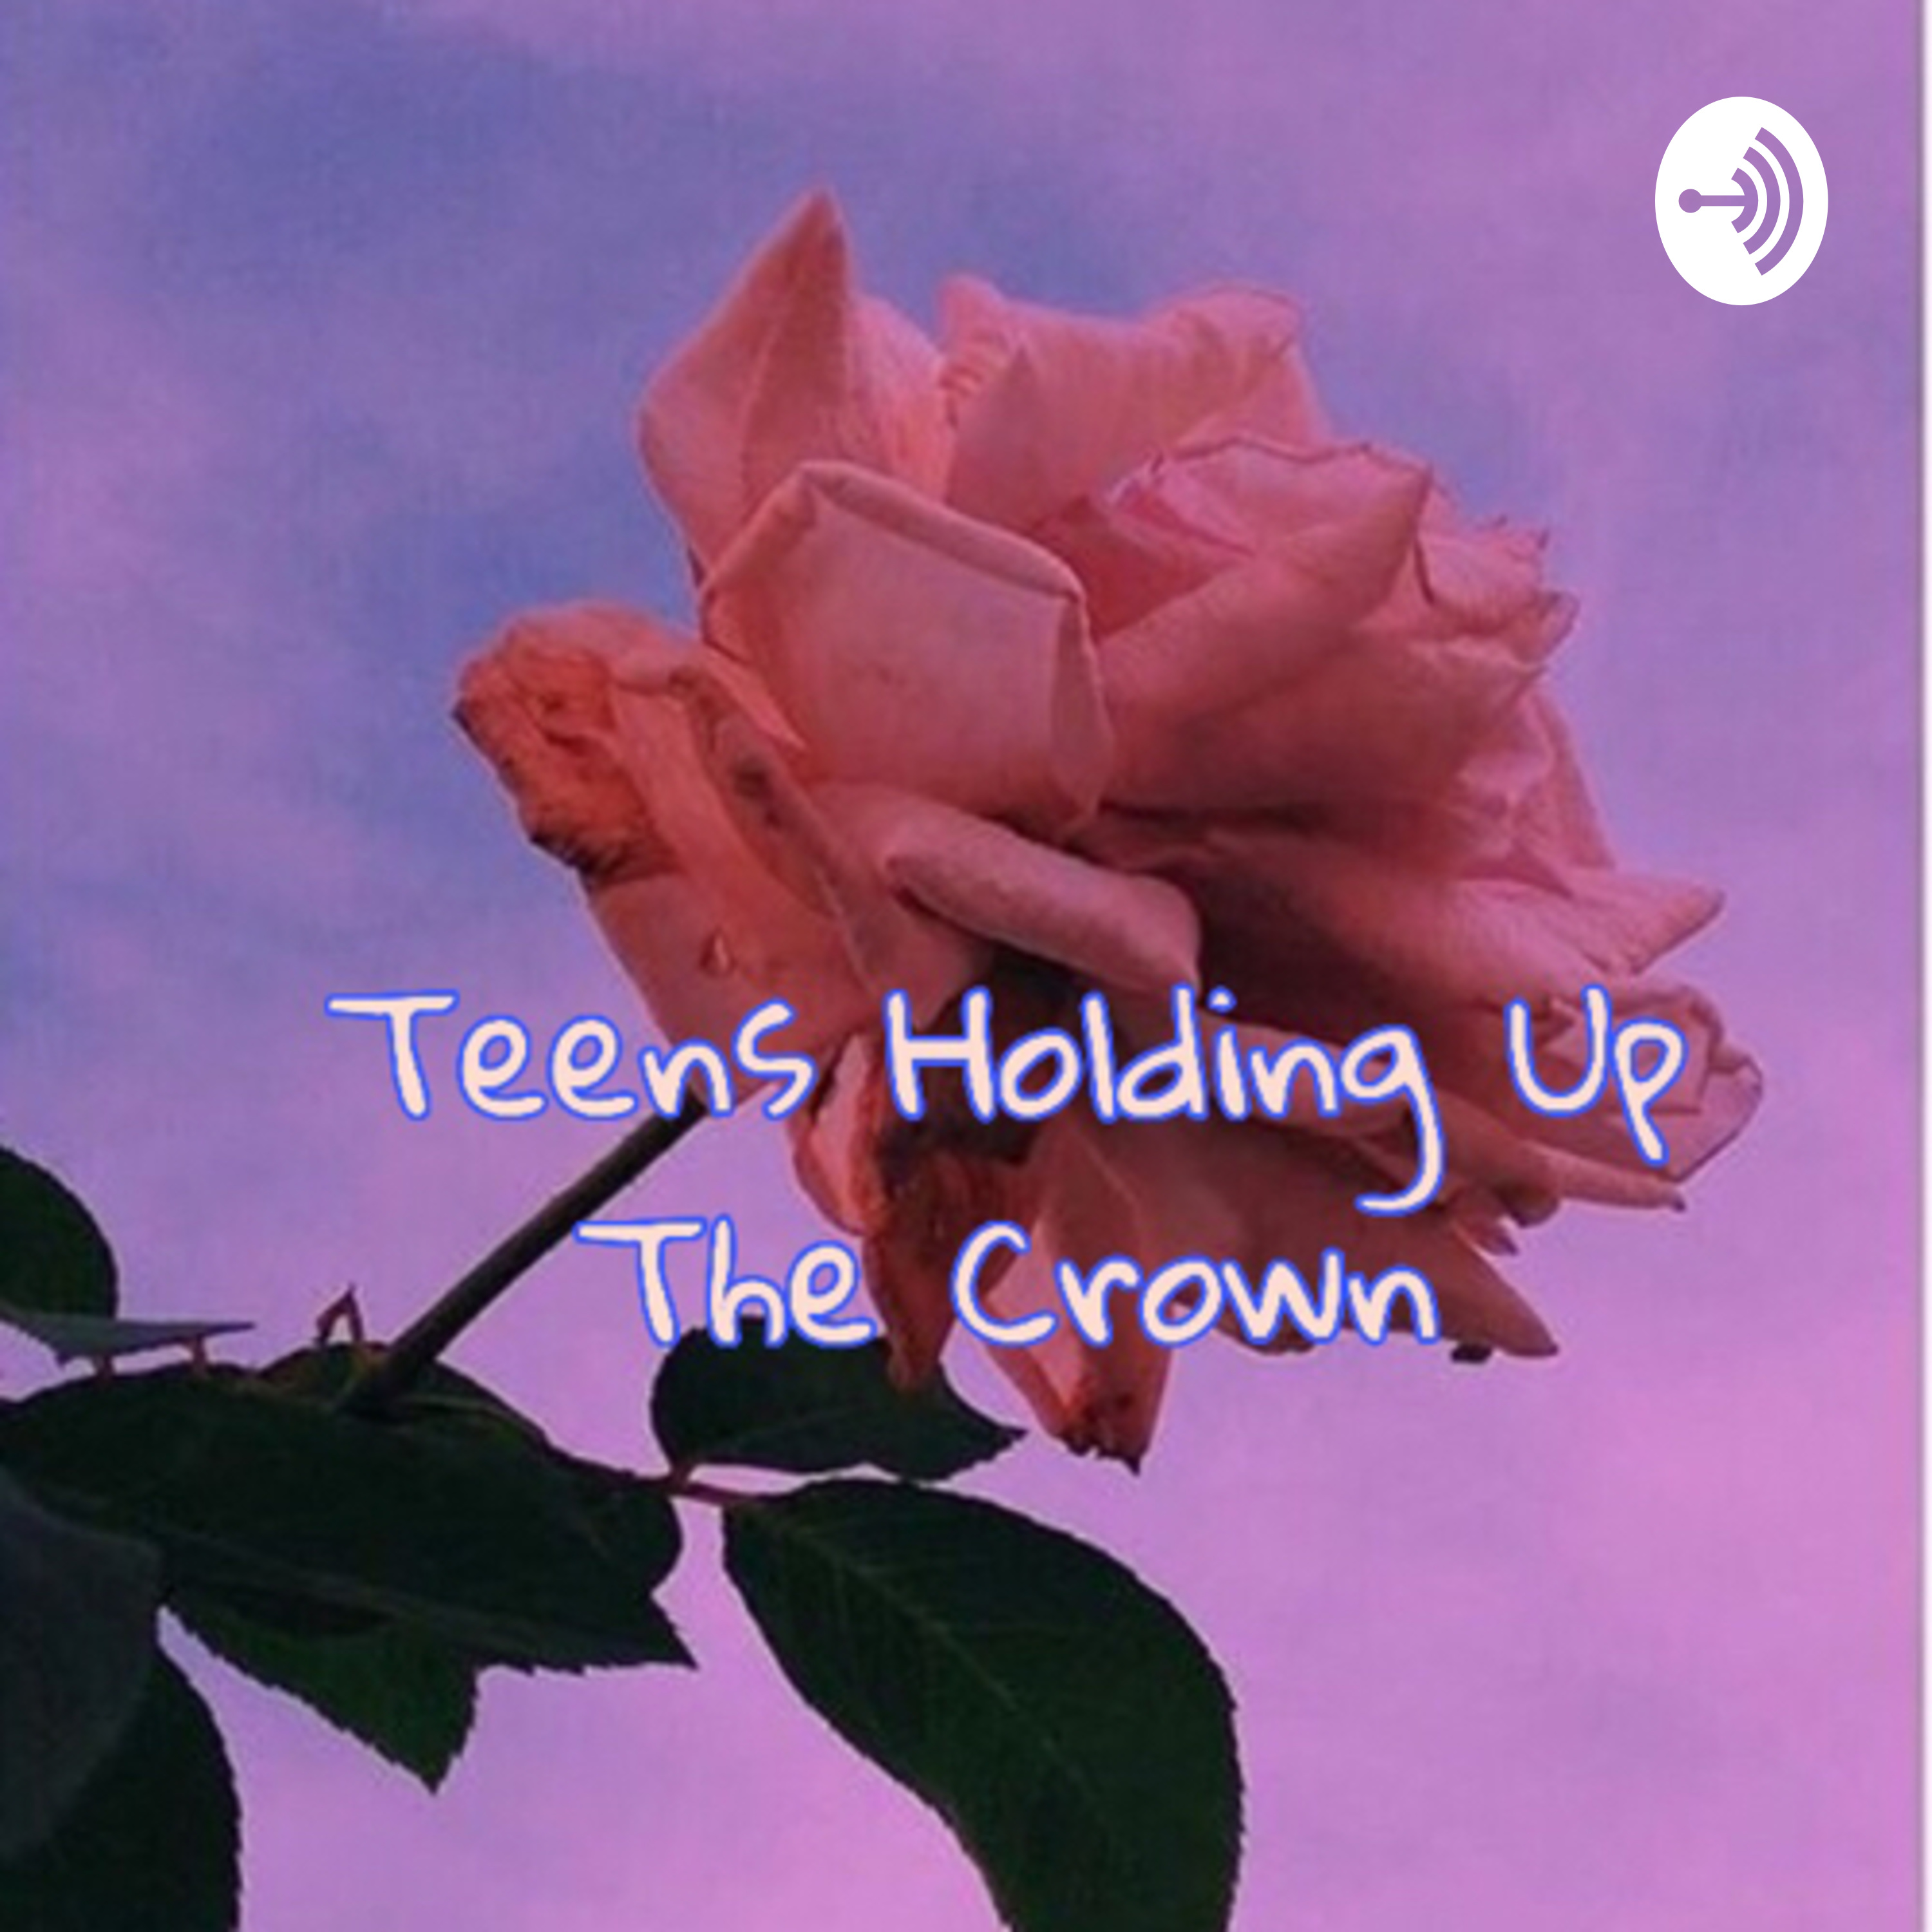 Teens holding up the crown